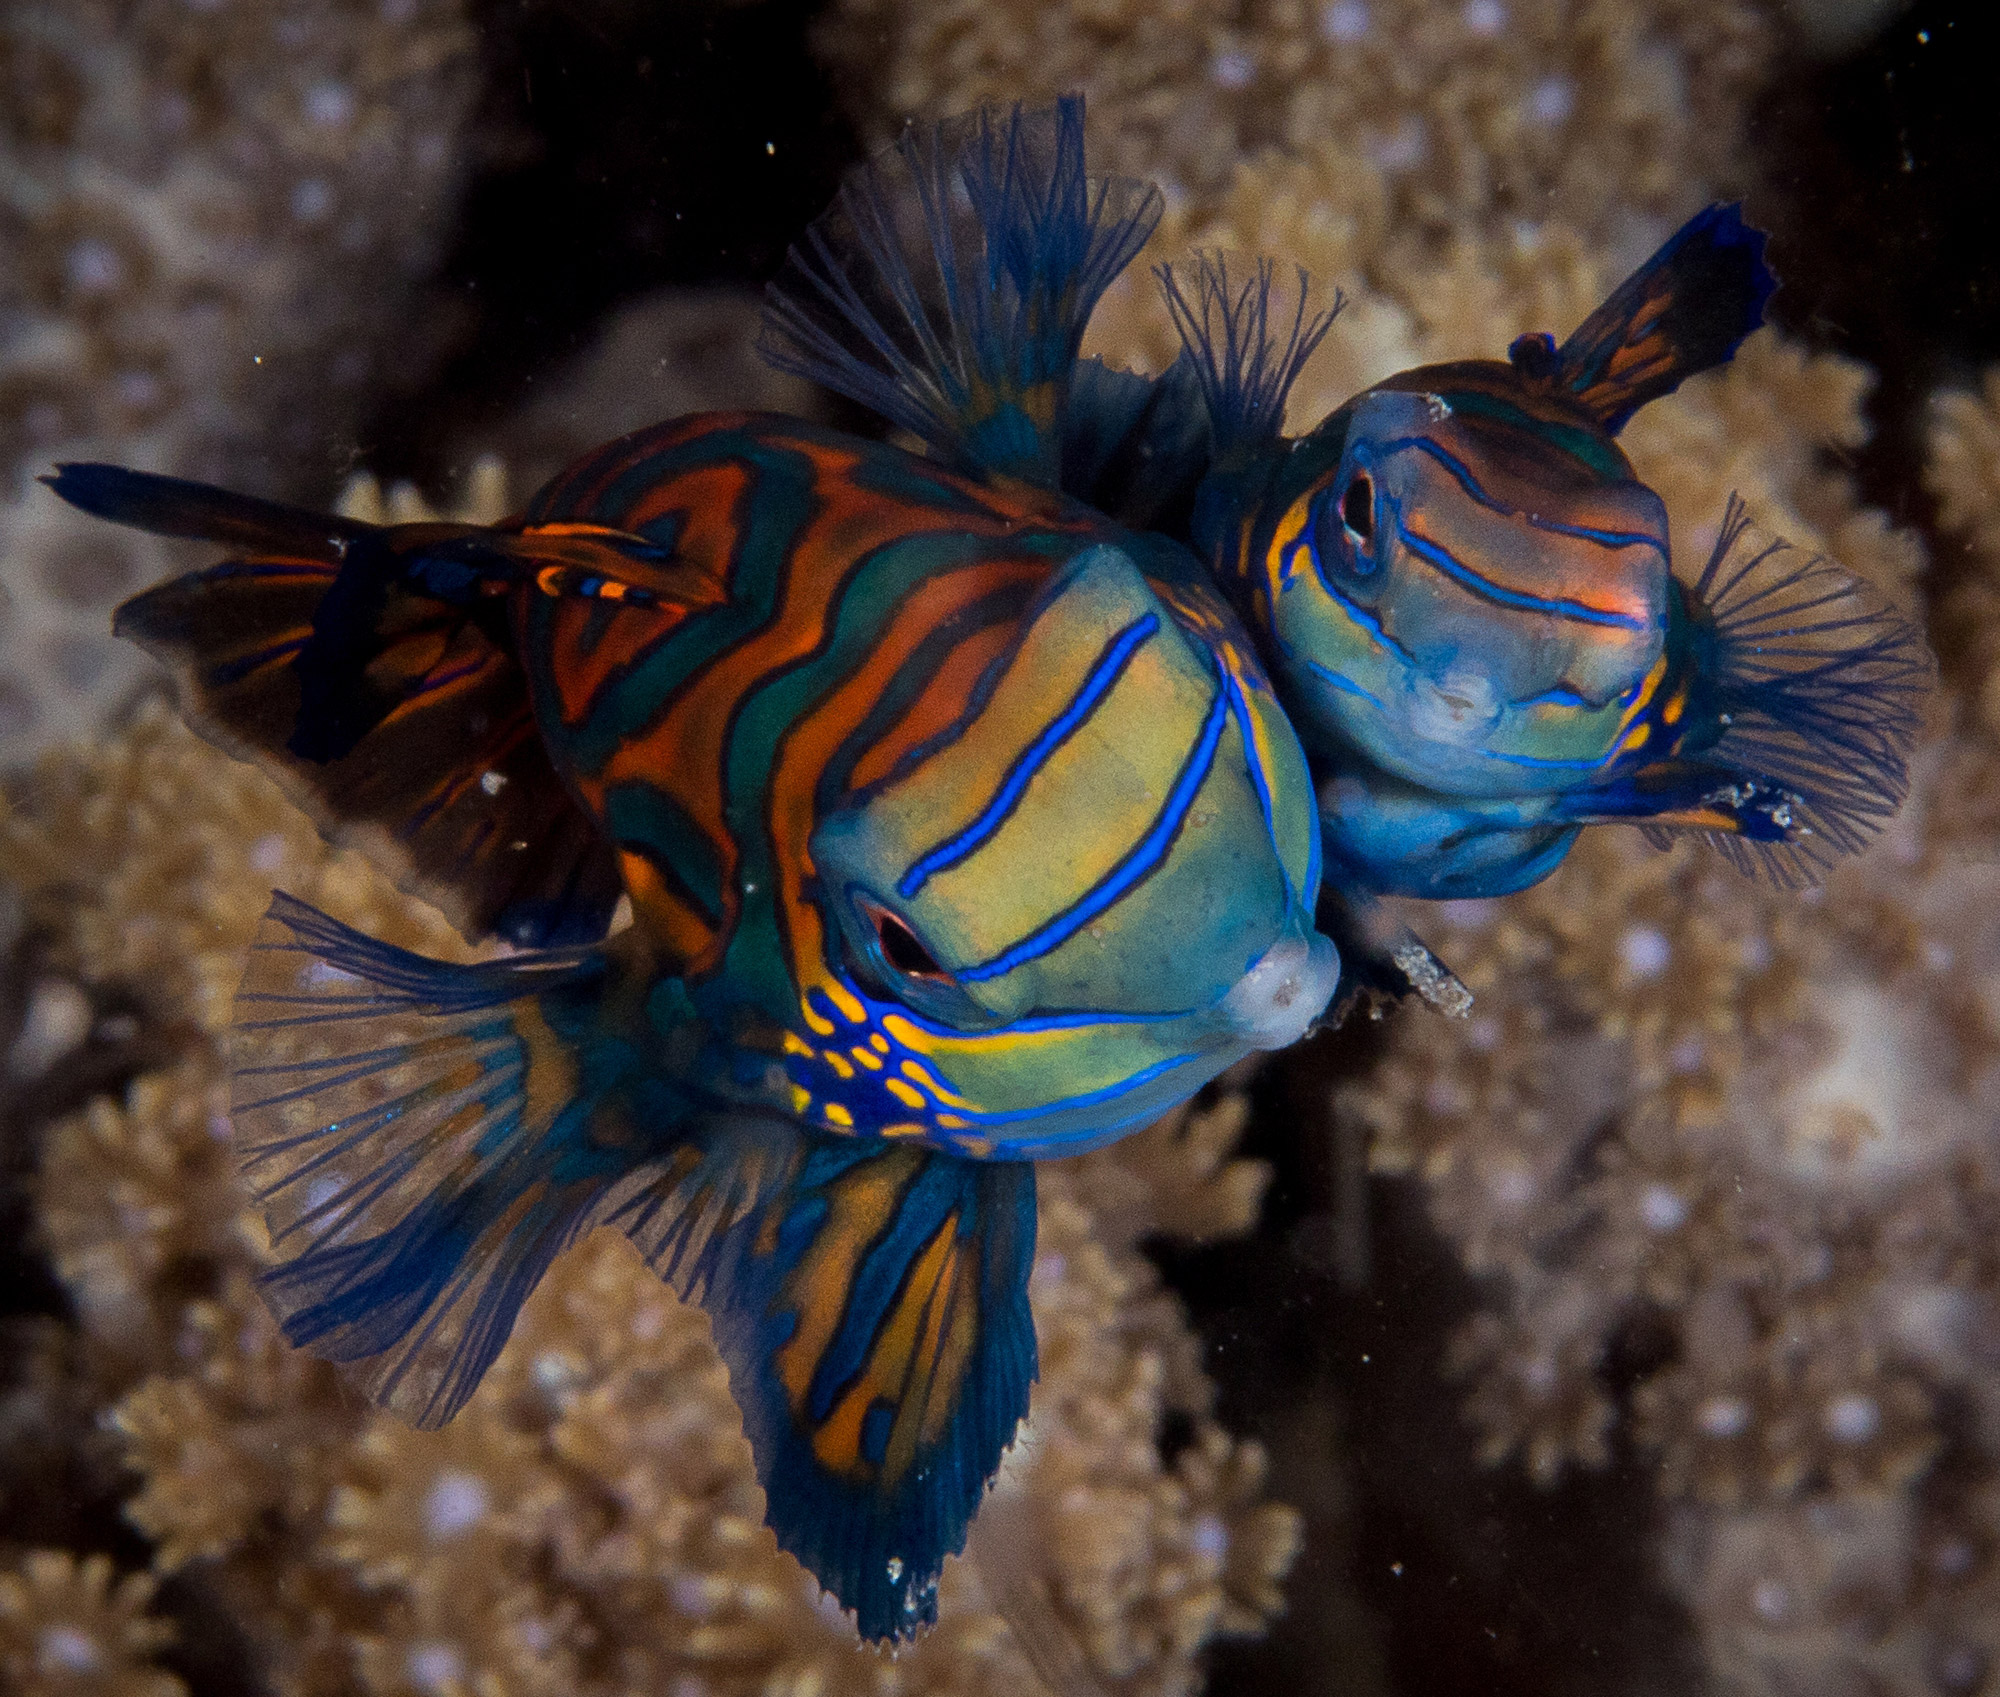 Mandarin Fish, photo: Markus Hahn (November 2018)